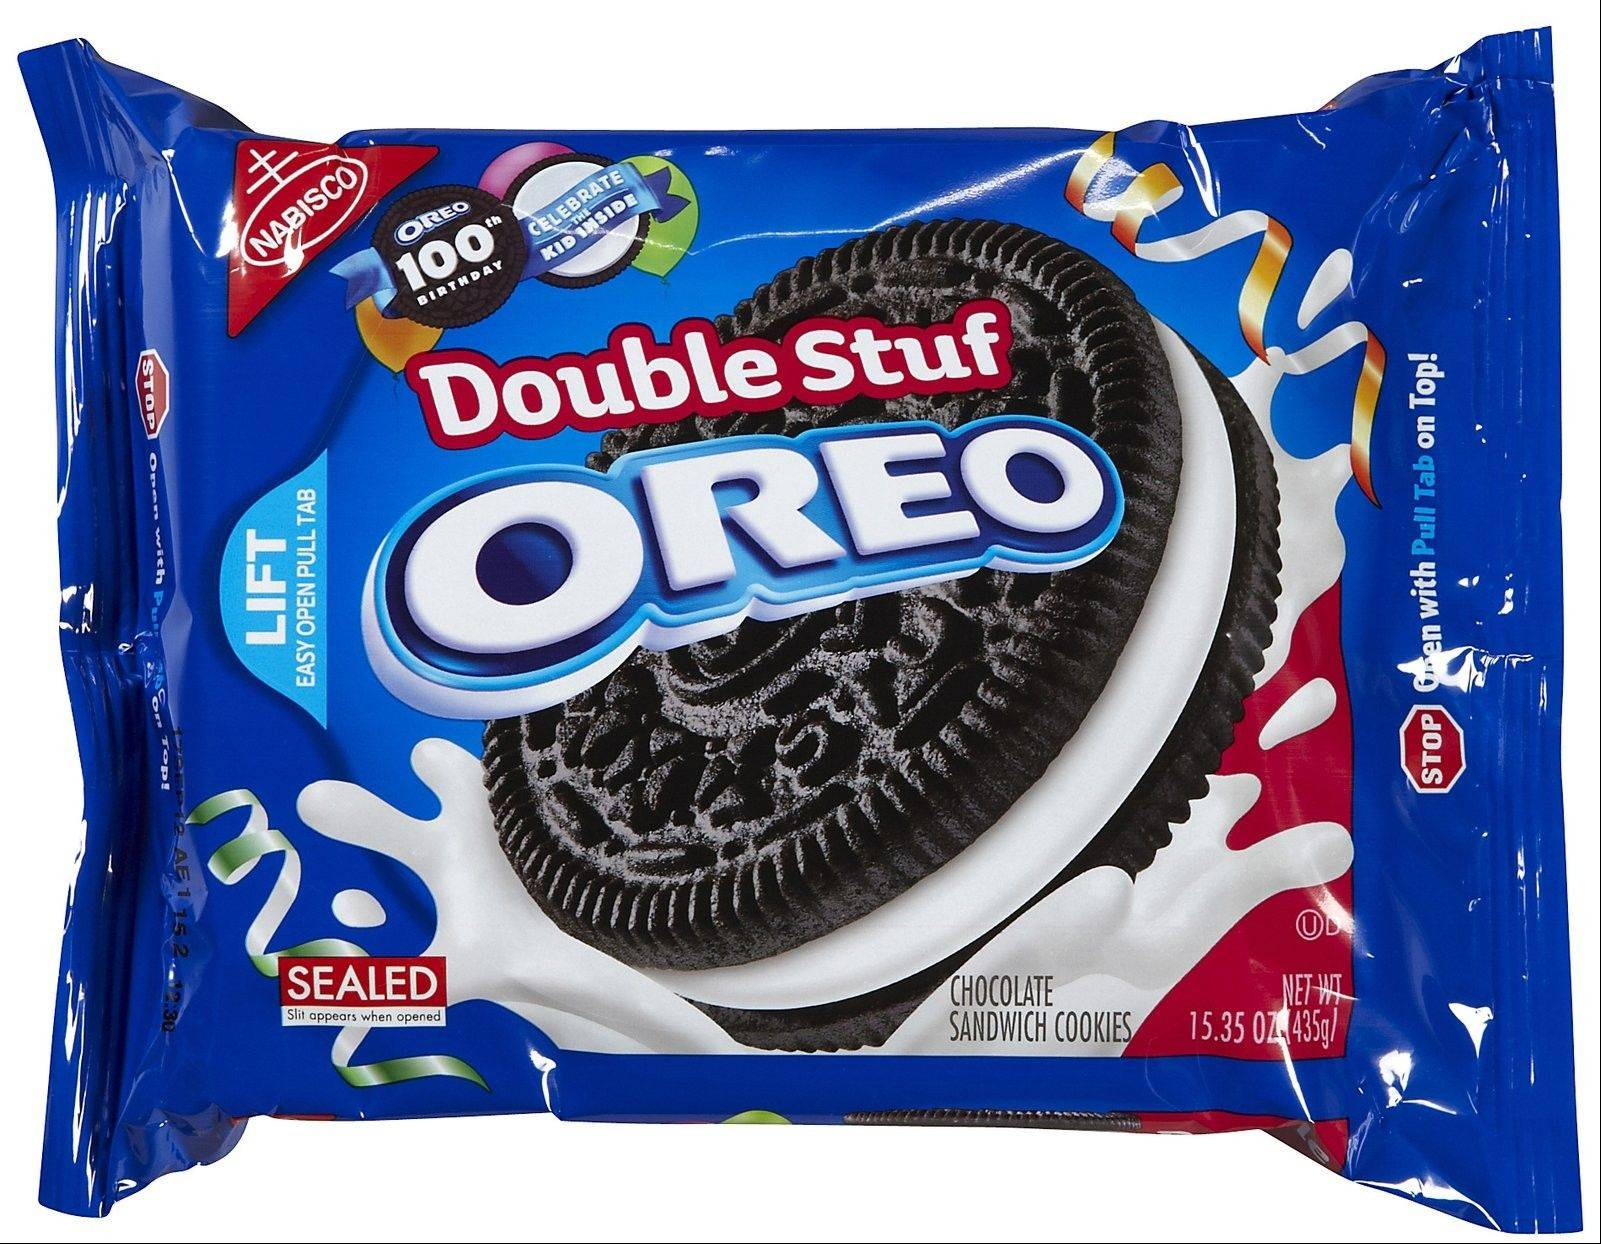 Deerfield-based Mondelez, maker of Oreo cookies, has struggled since separating from Kraft Foods last October.